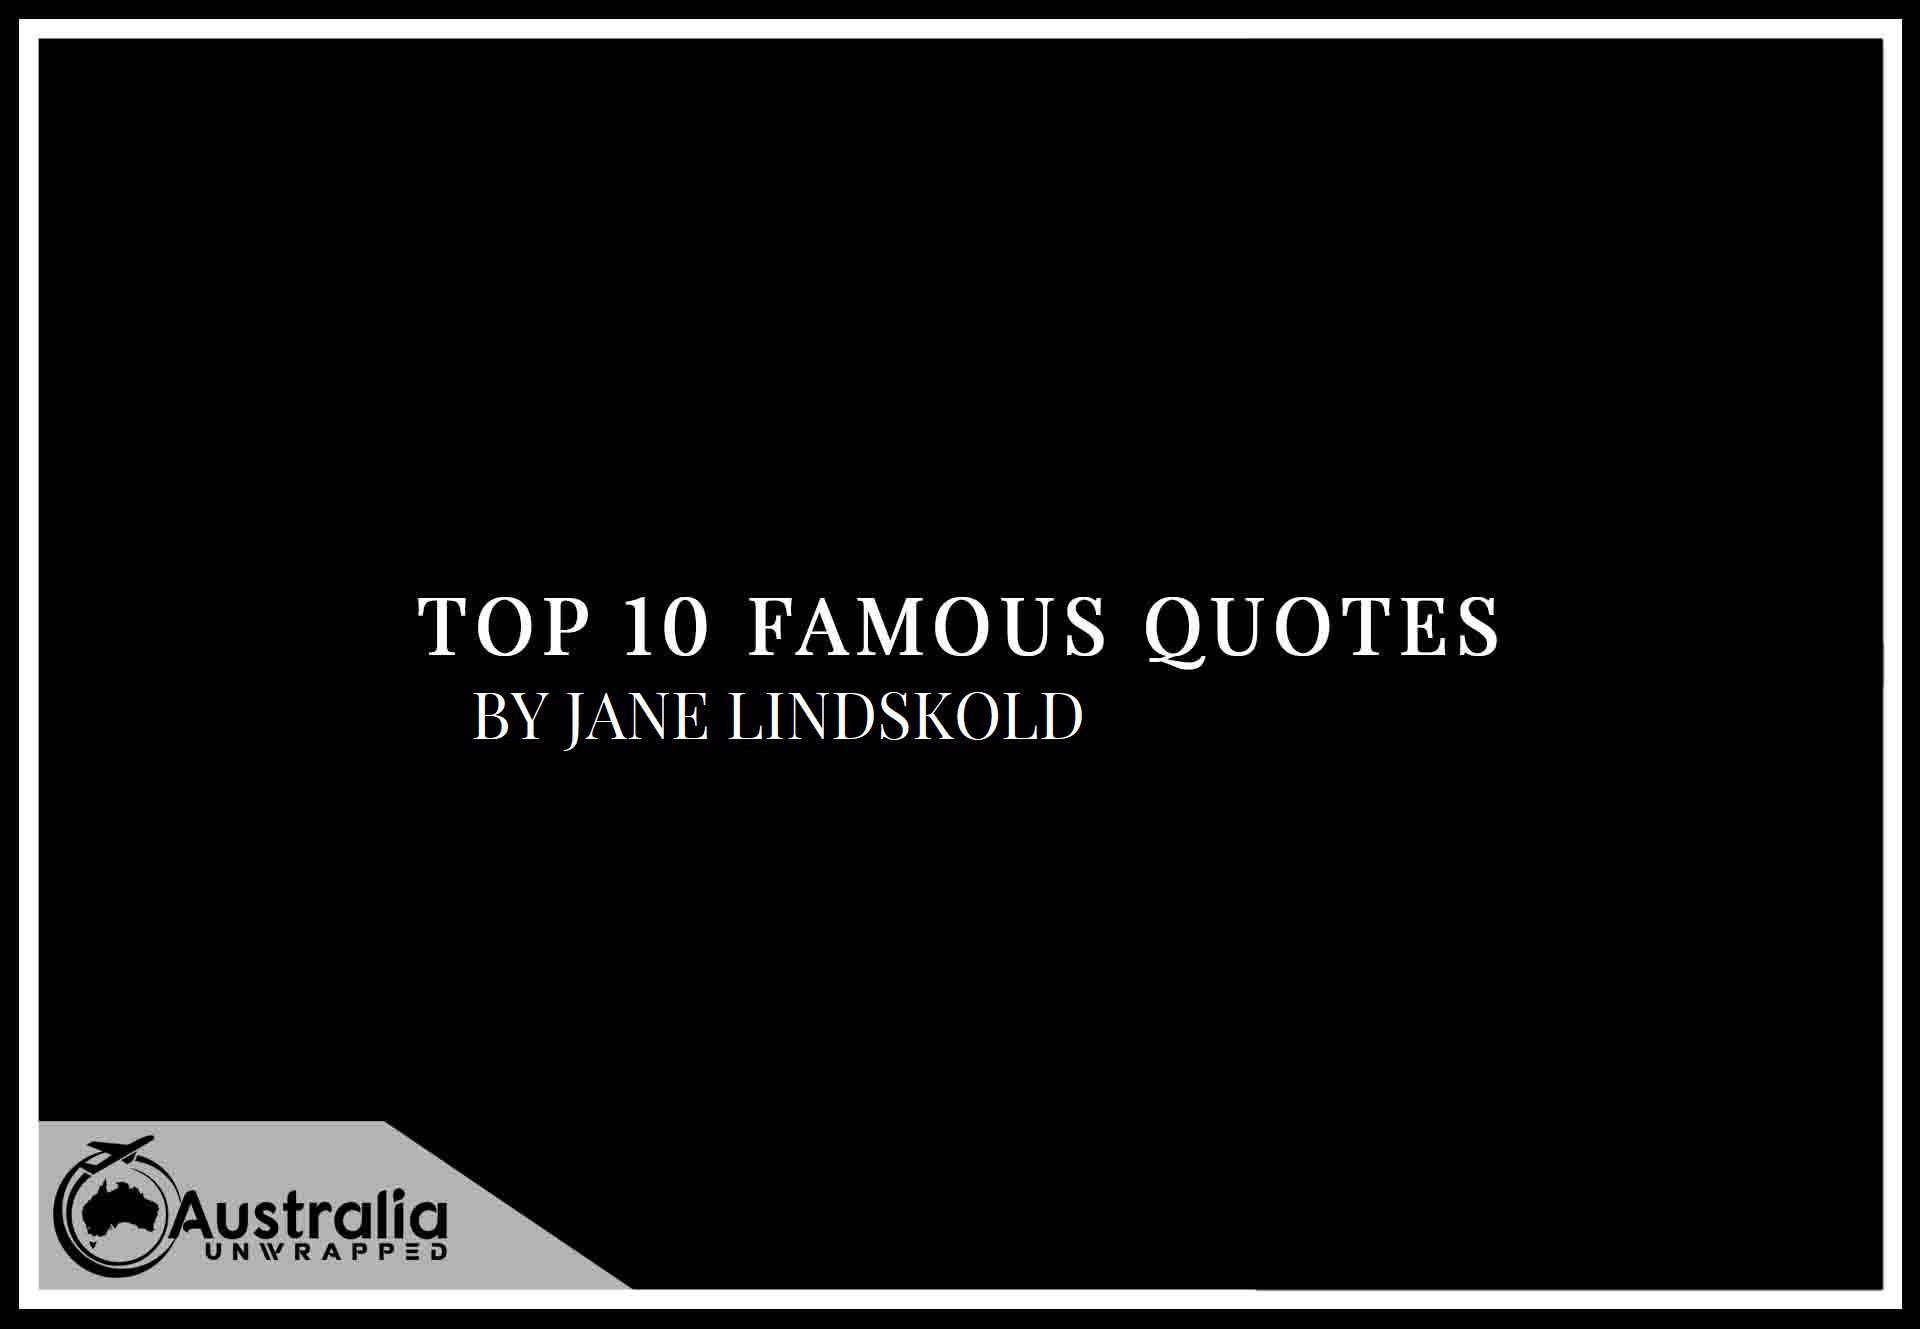 Top 10 Famous Quotes by Author Jane Lindskold